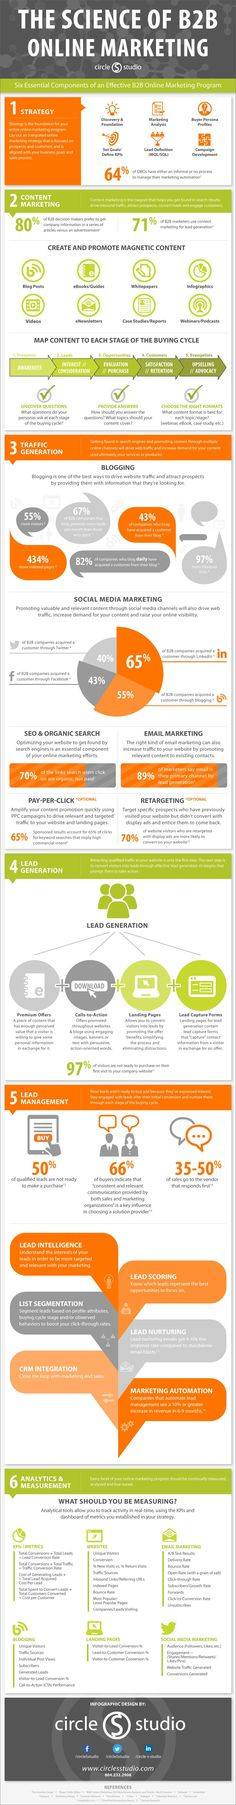 6 Components You Need In A B2B Online Marketing Program (Infographic)